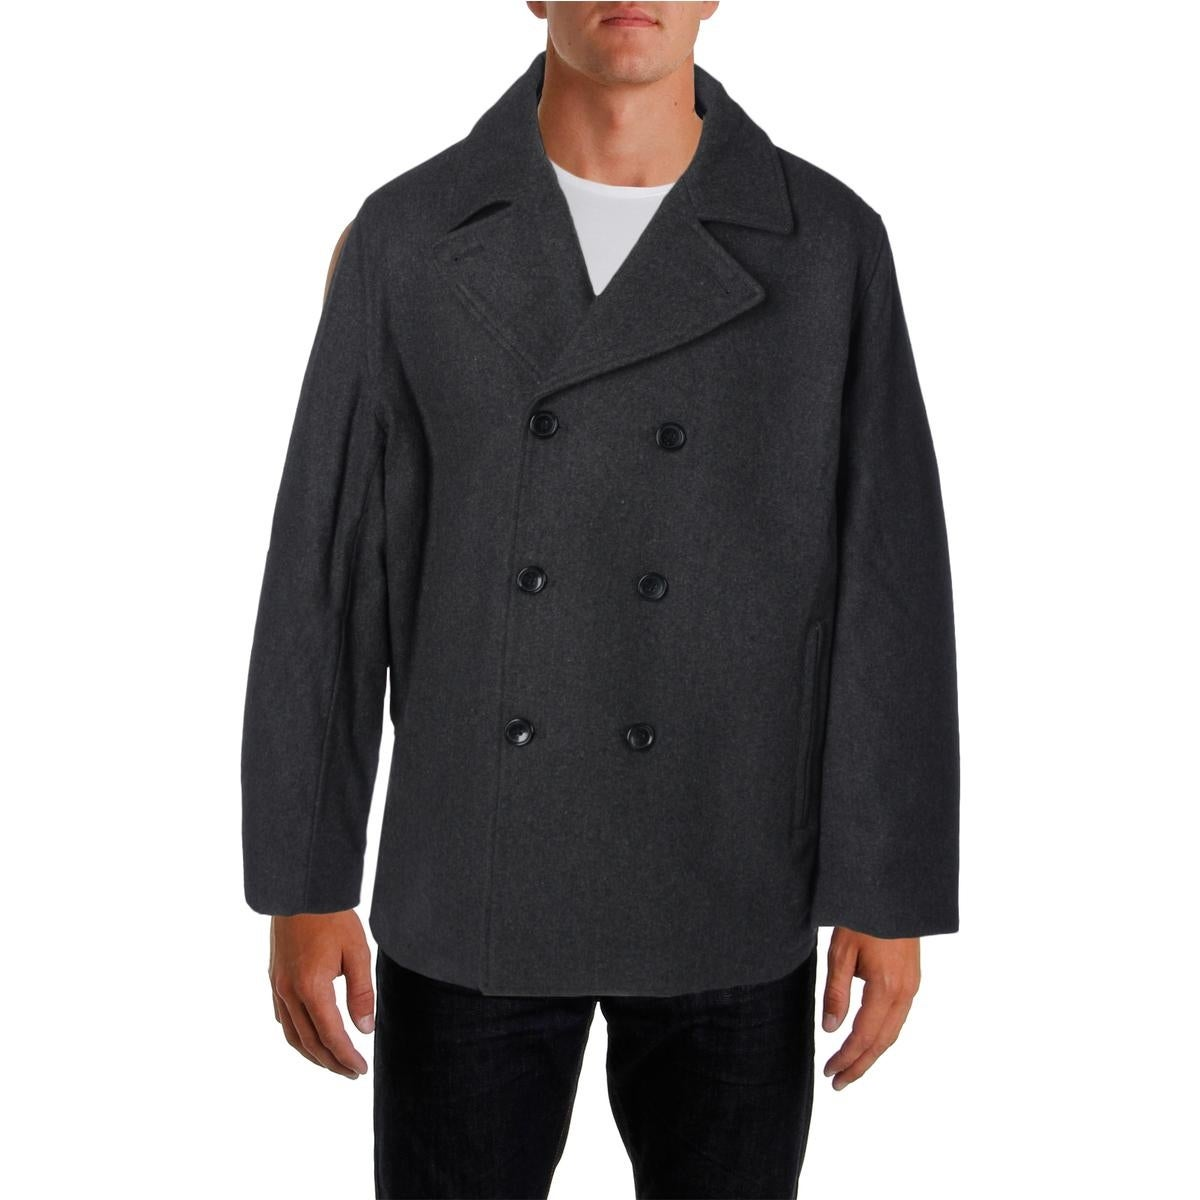 Towne By London Fog Mens Pea Coat Wool Blend Double-Breasted - Thumbnail 1